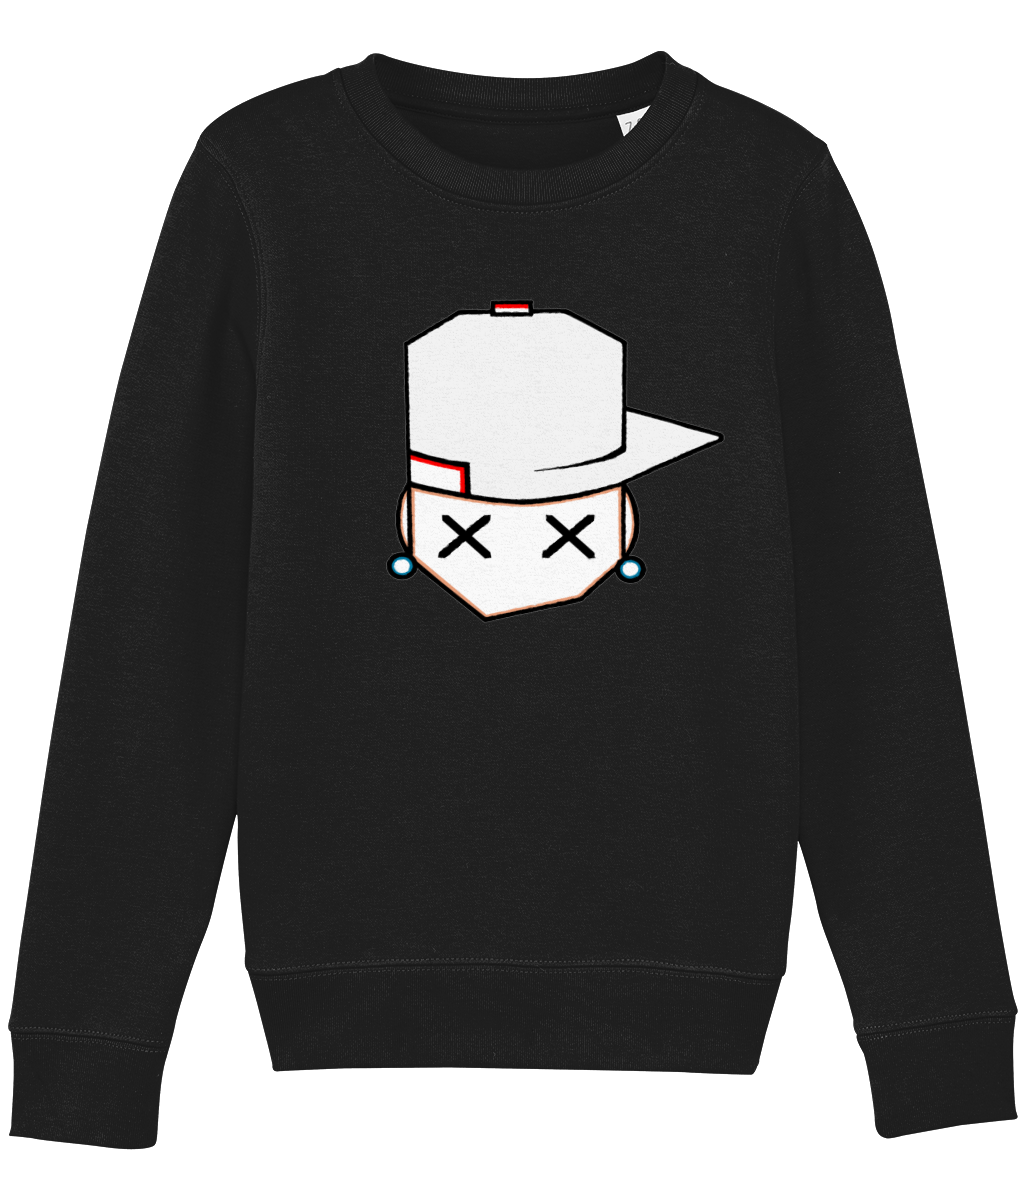 kids sweatshirt Mini Changer 07 off white cap